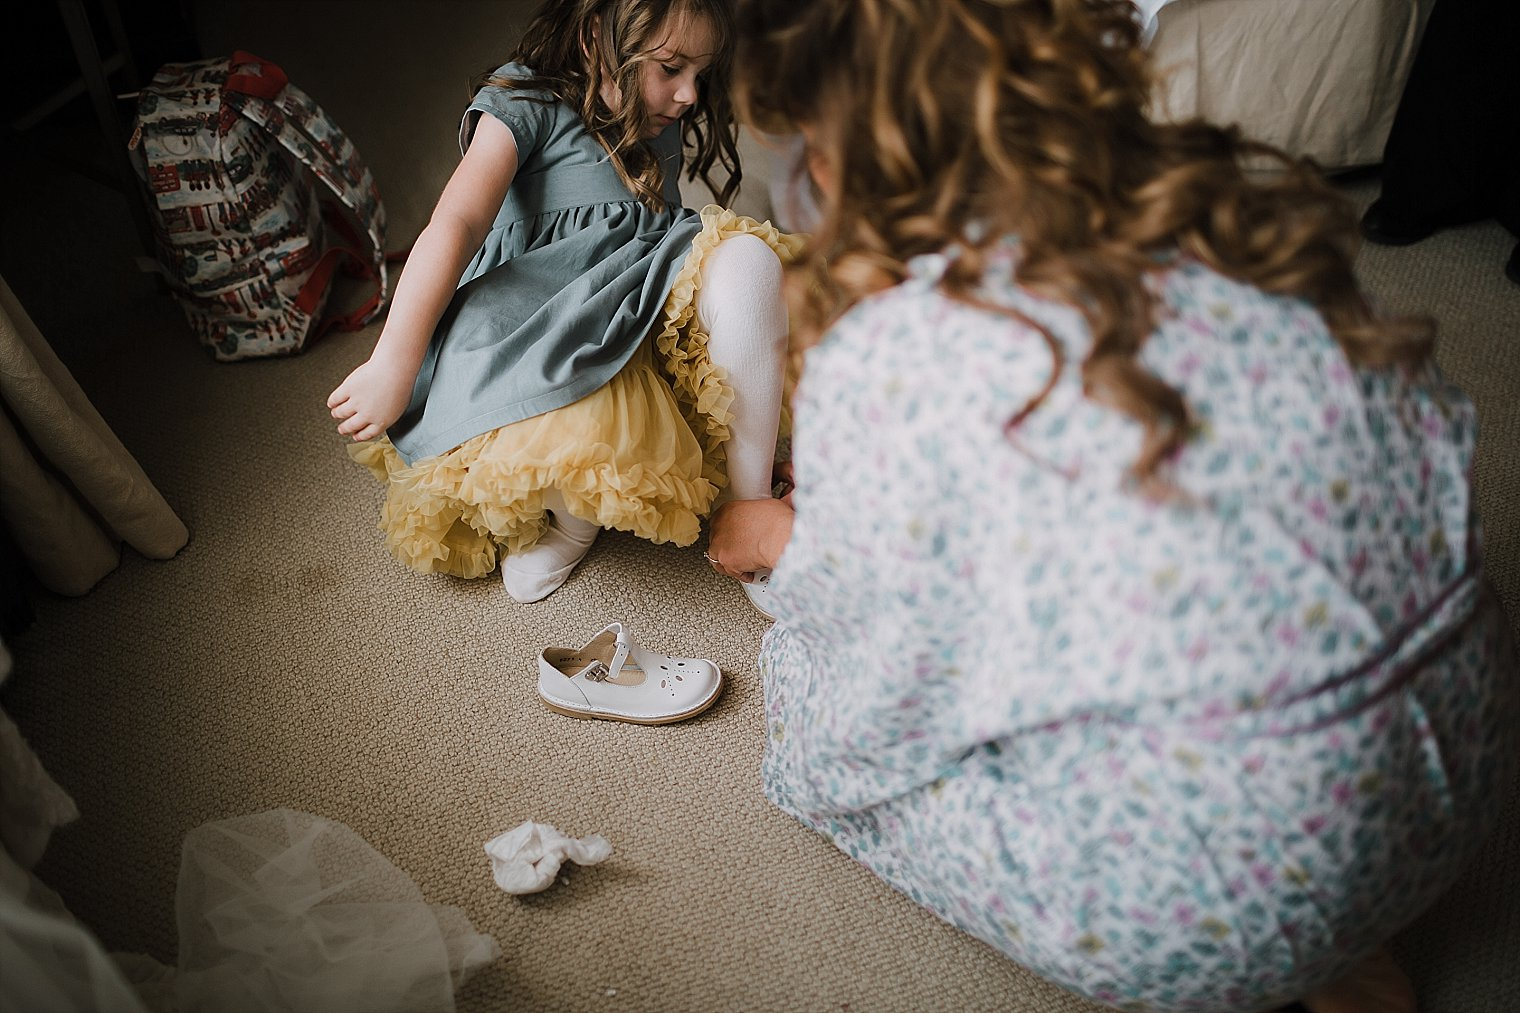 Bride helping her flowergirl put her shoes on